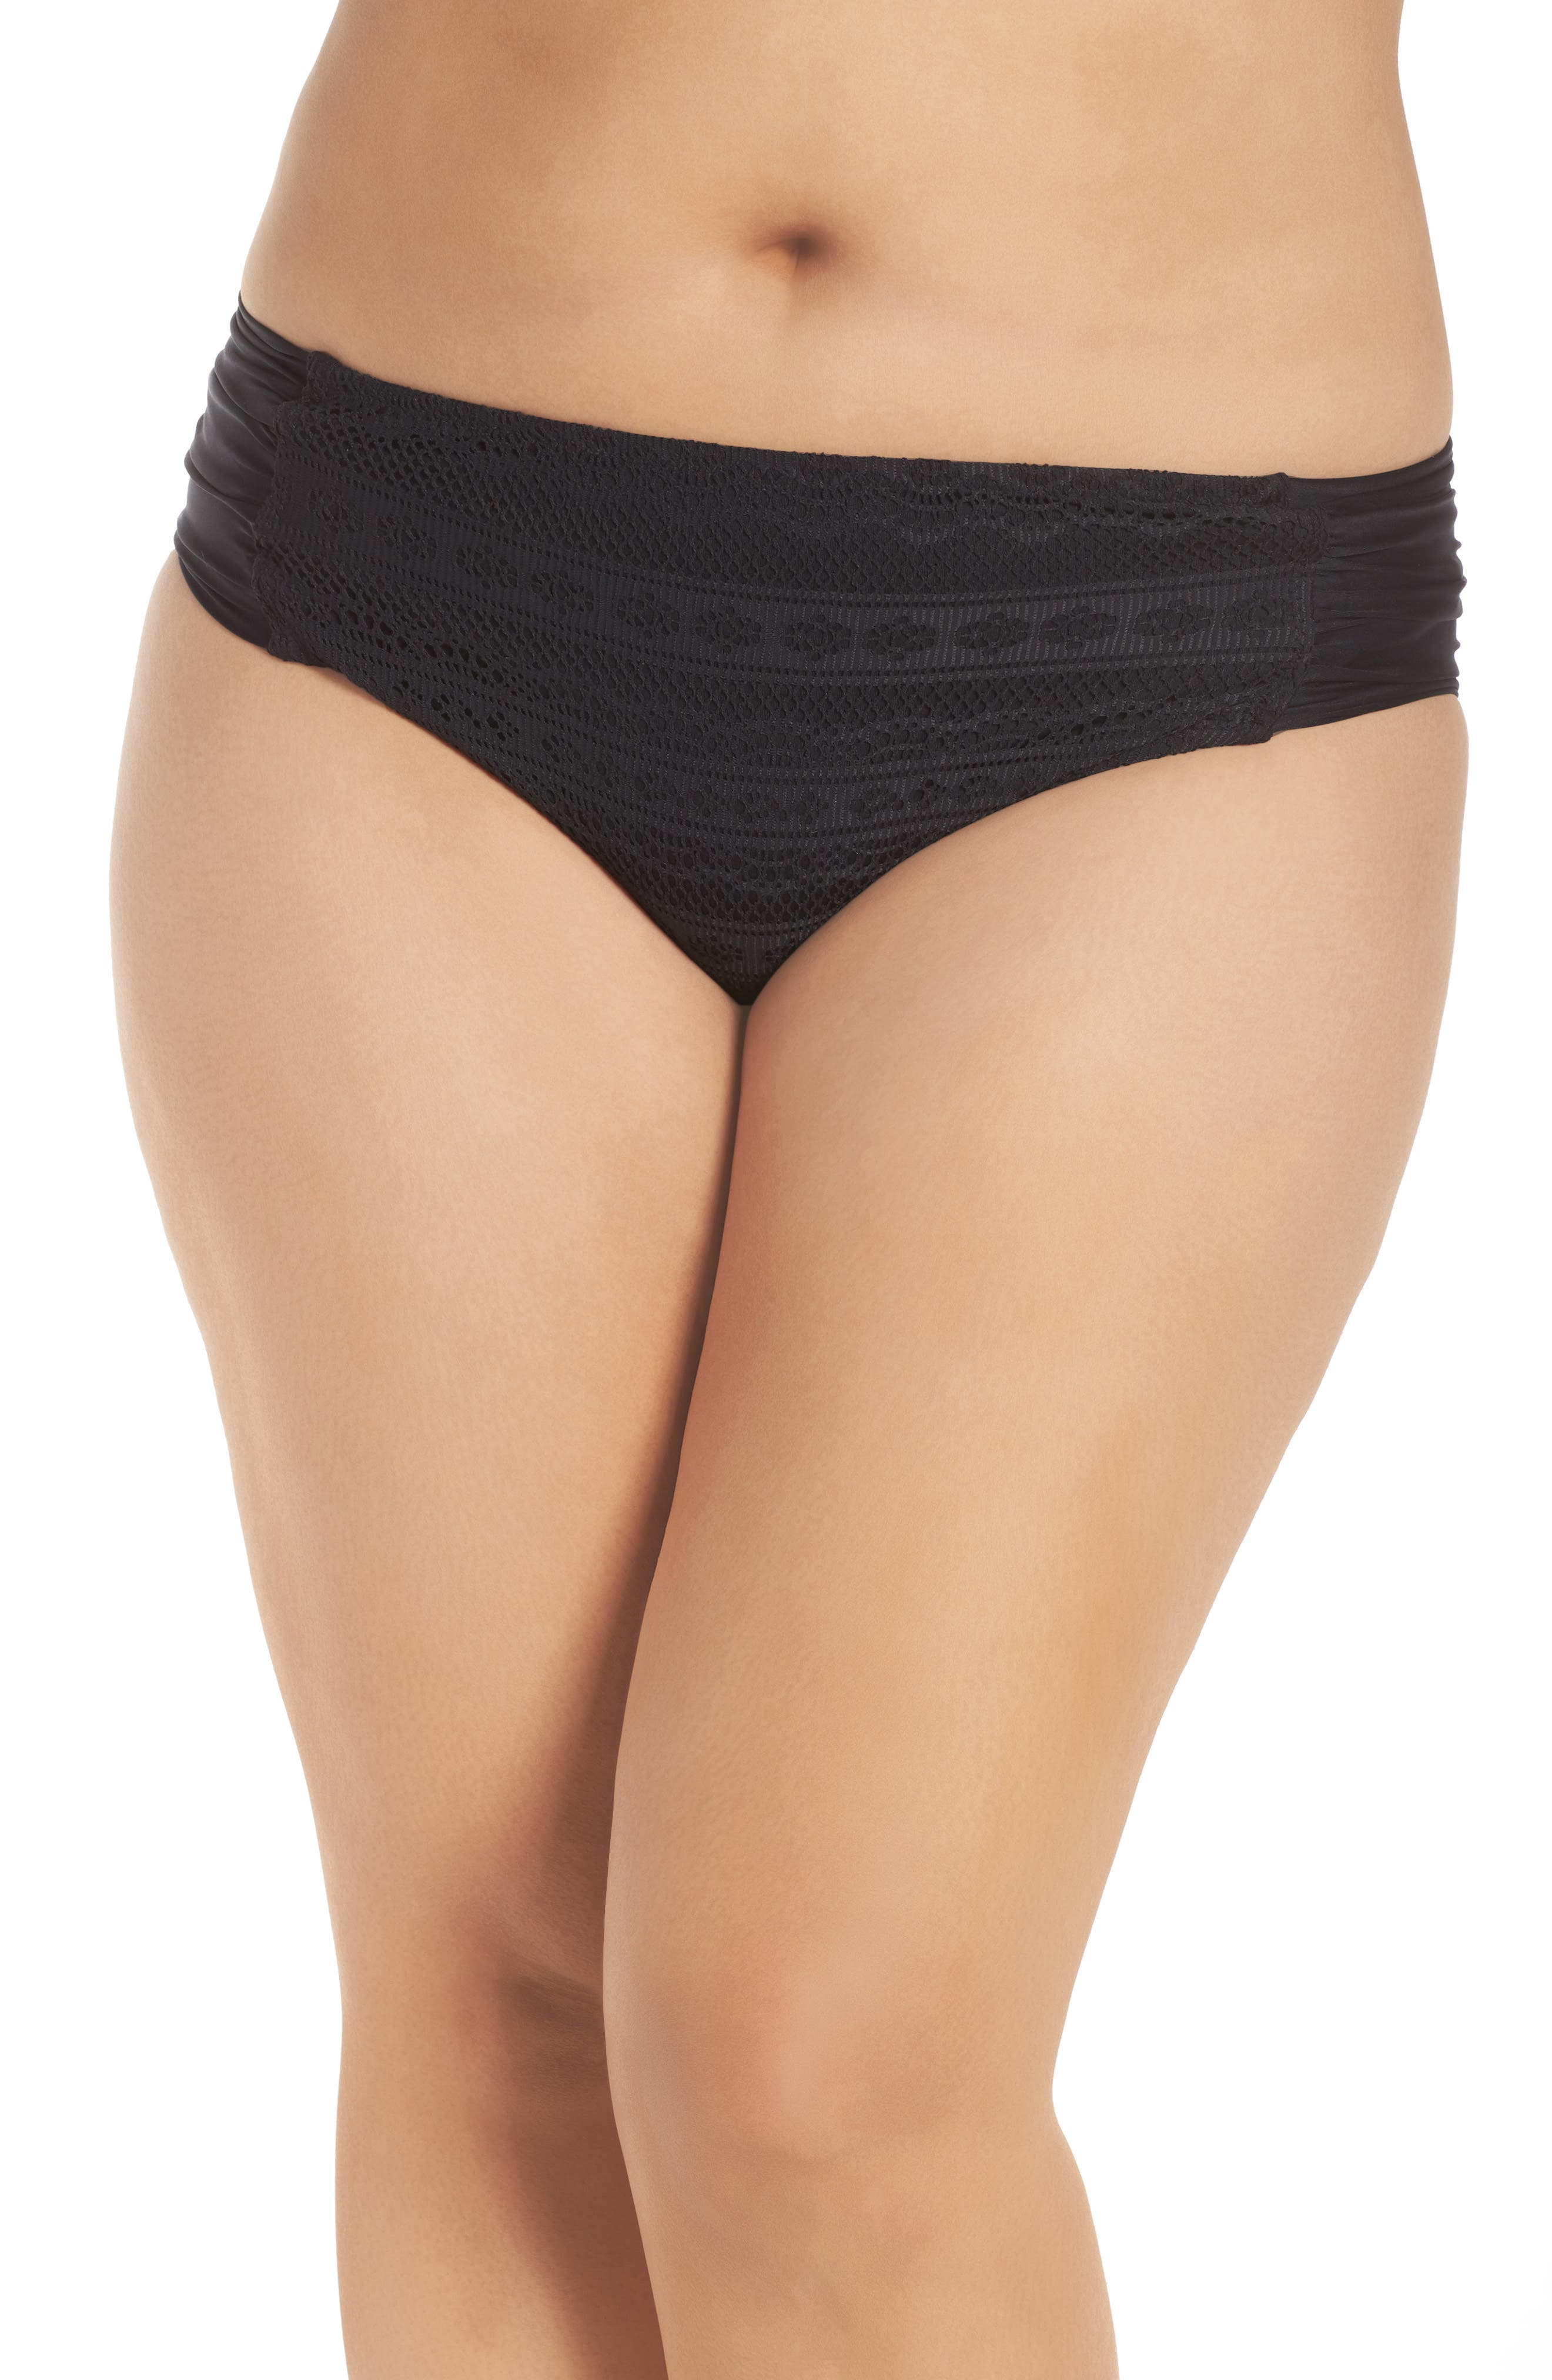 Plus Size Becca Etc. Color Play Bikini Bottoms, Black